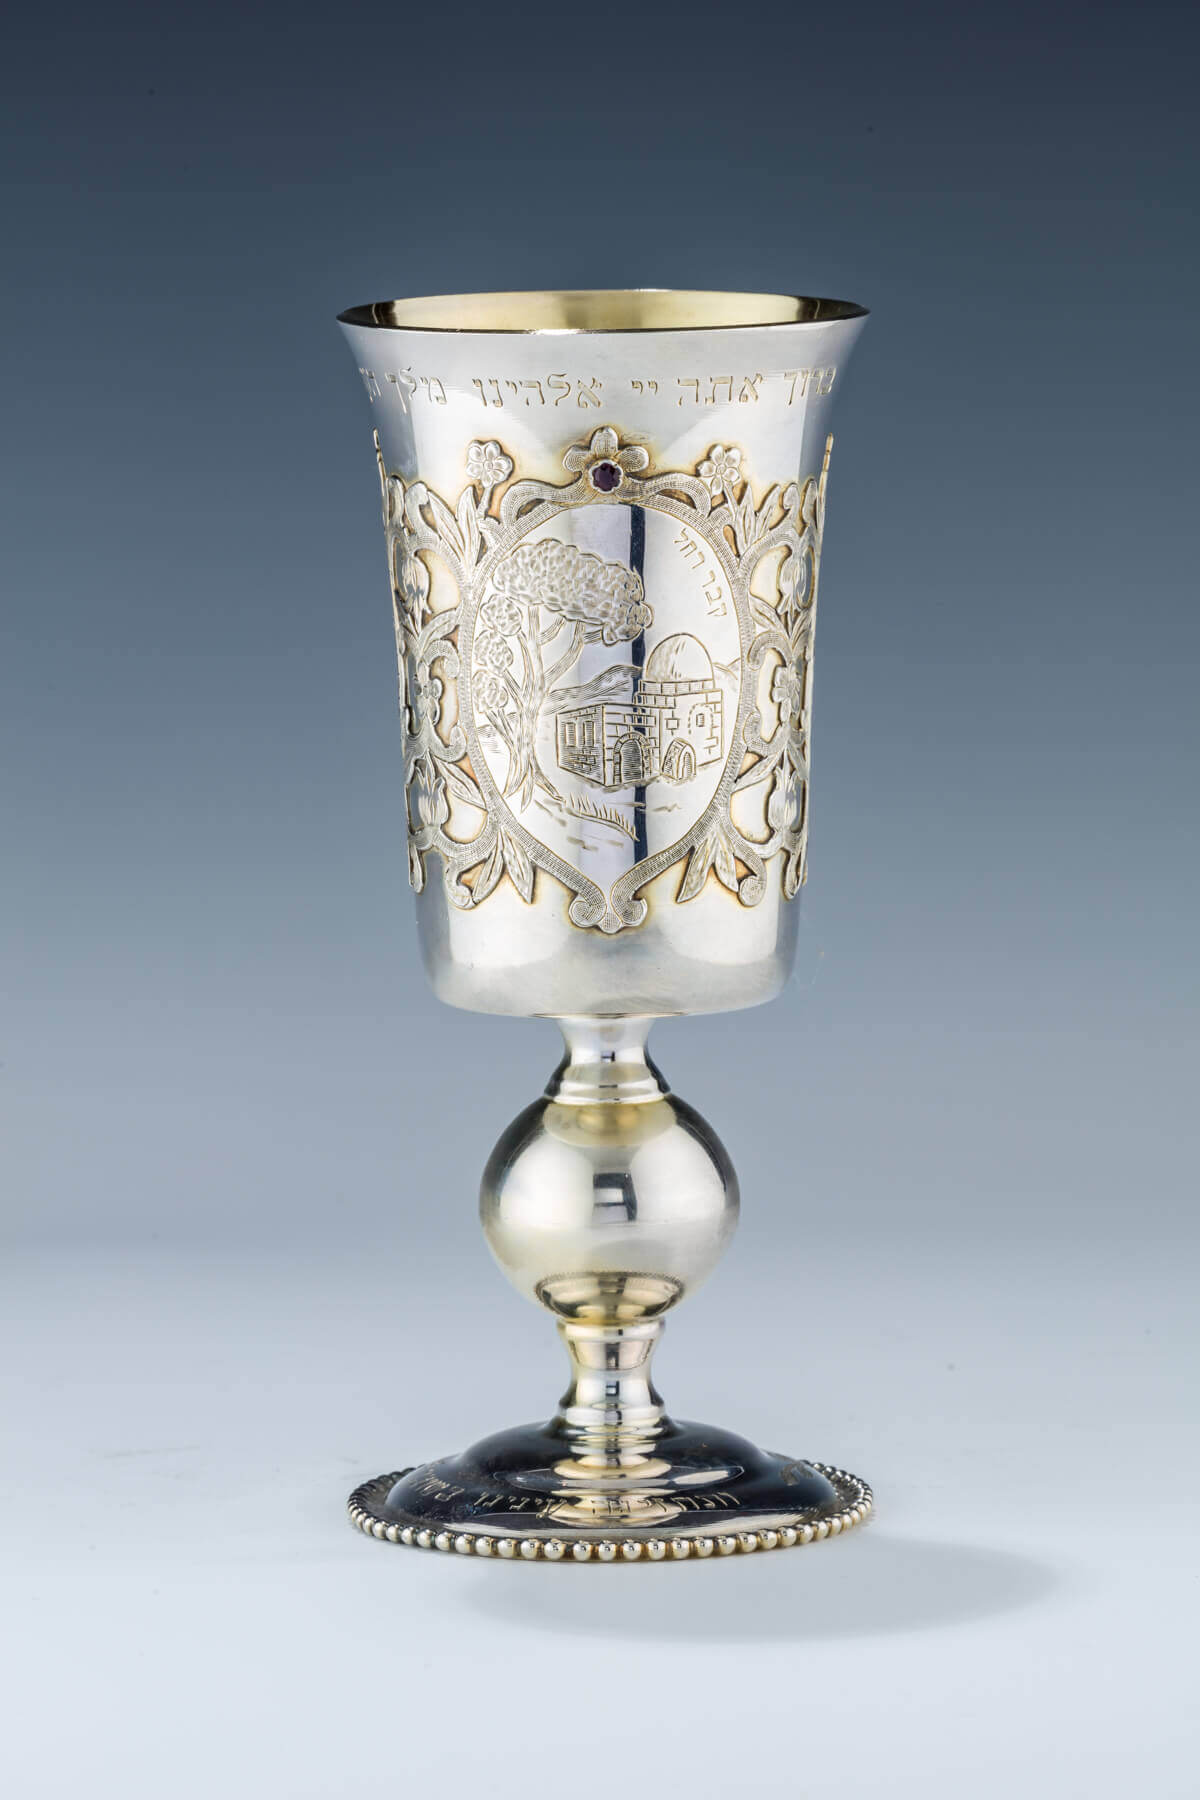 169. A LARGE STERLING SILVER KIDDUSH GOBLET BY SHUKI FREIMAN